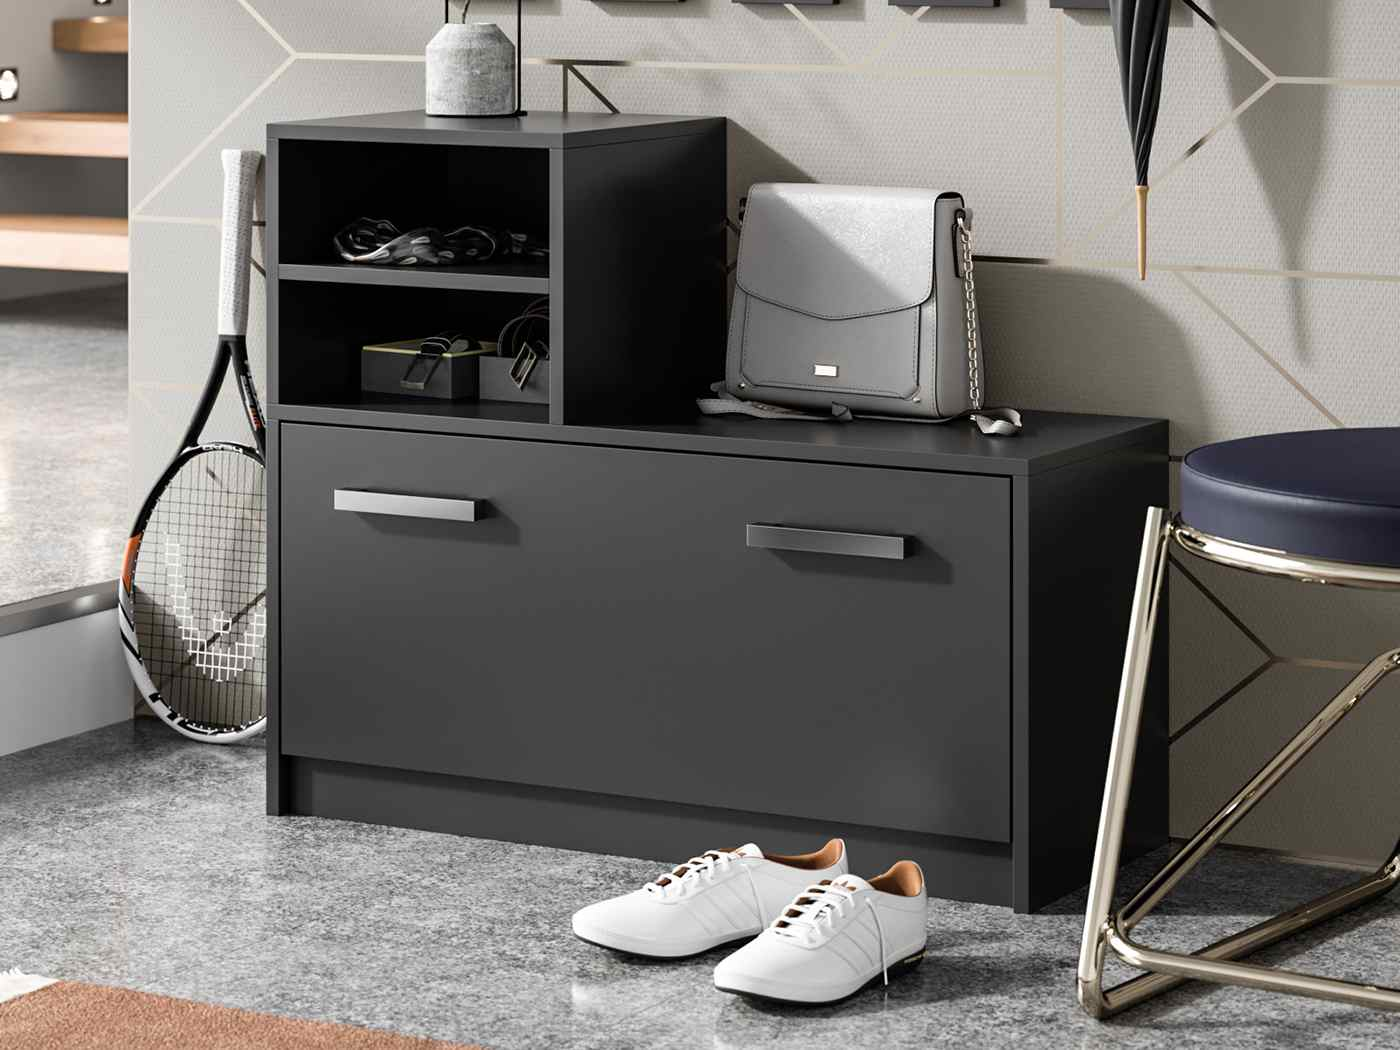 Shoe cabinet Ruby coulour black matte